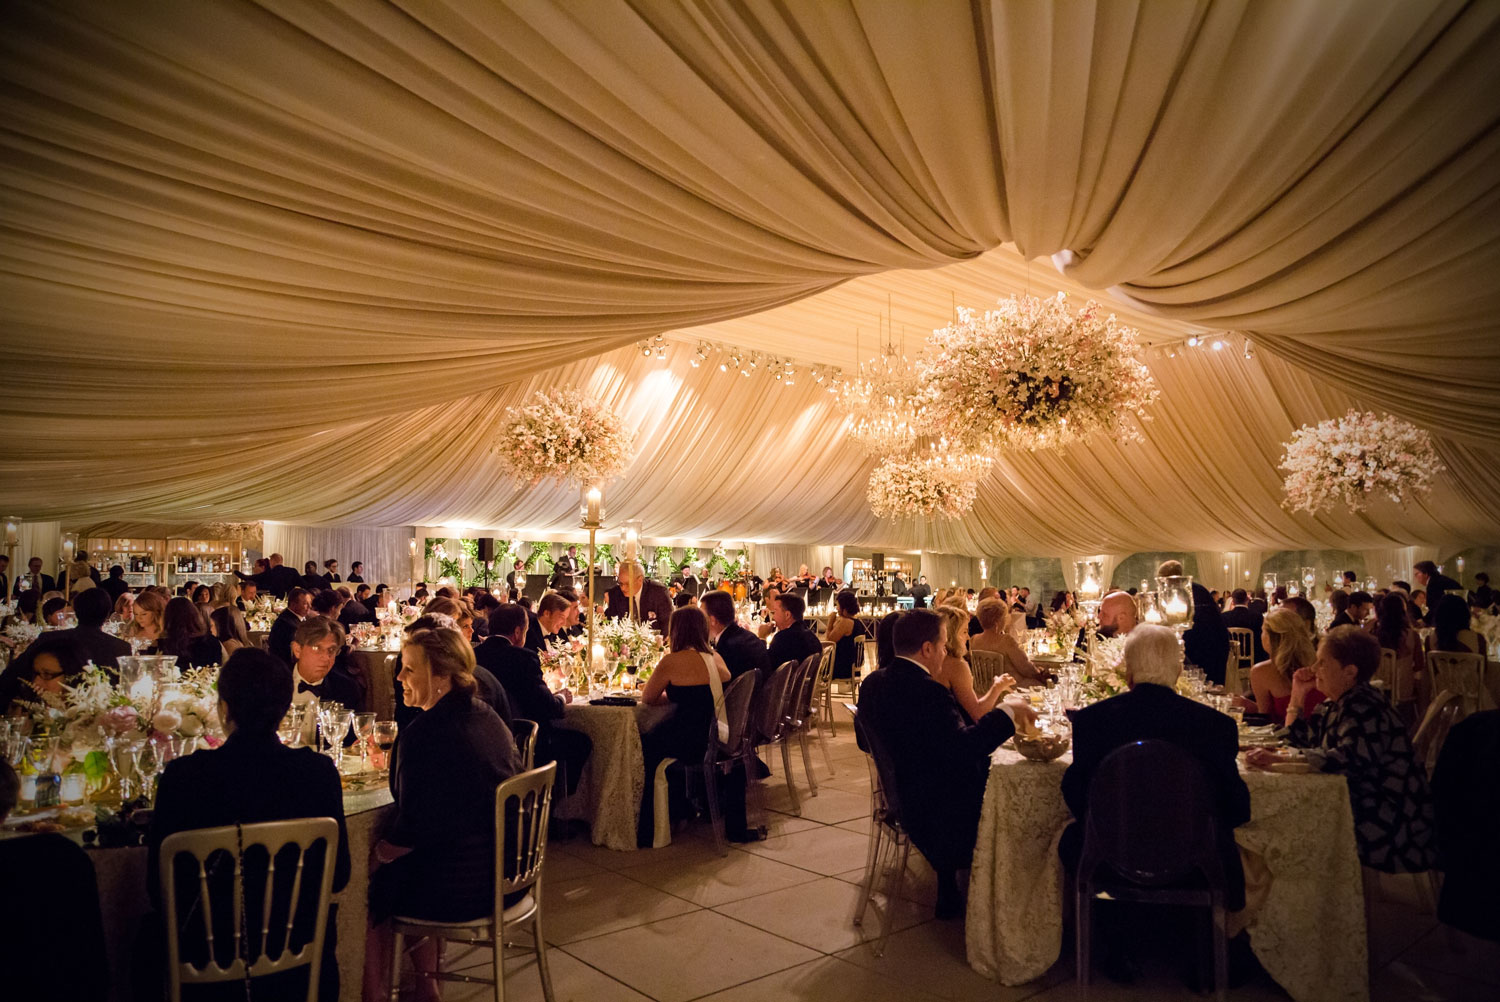 wedding entertainment ideas besides dancing, reception ideas for wedding with no dancing